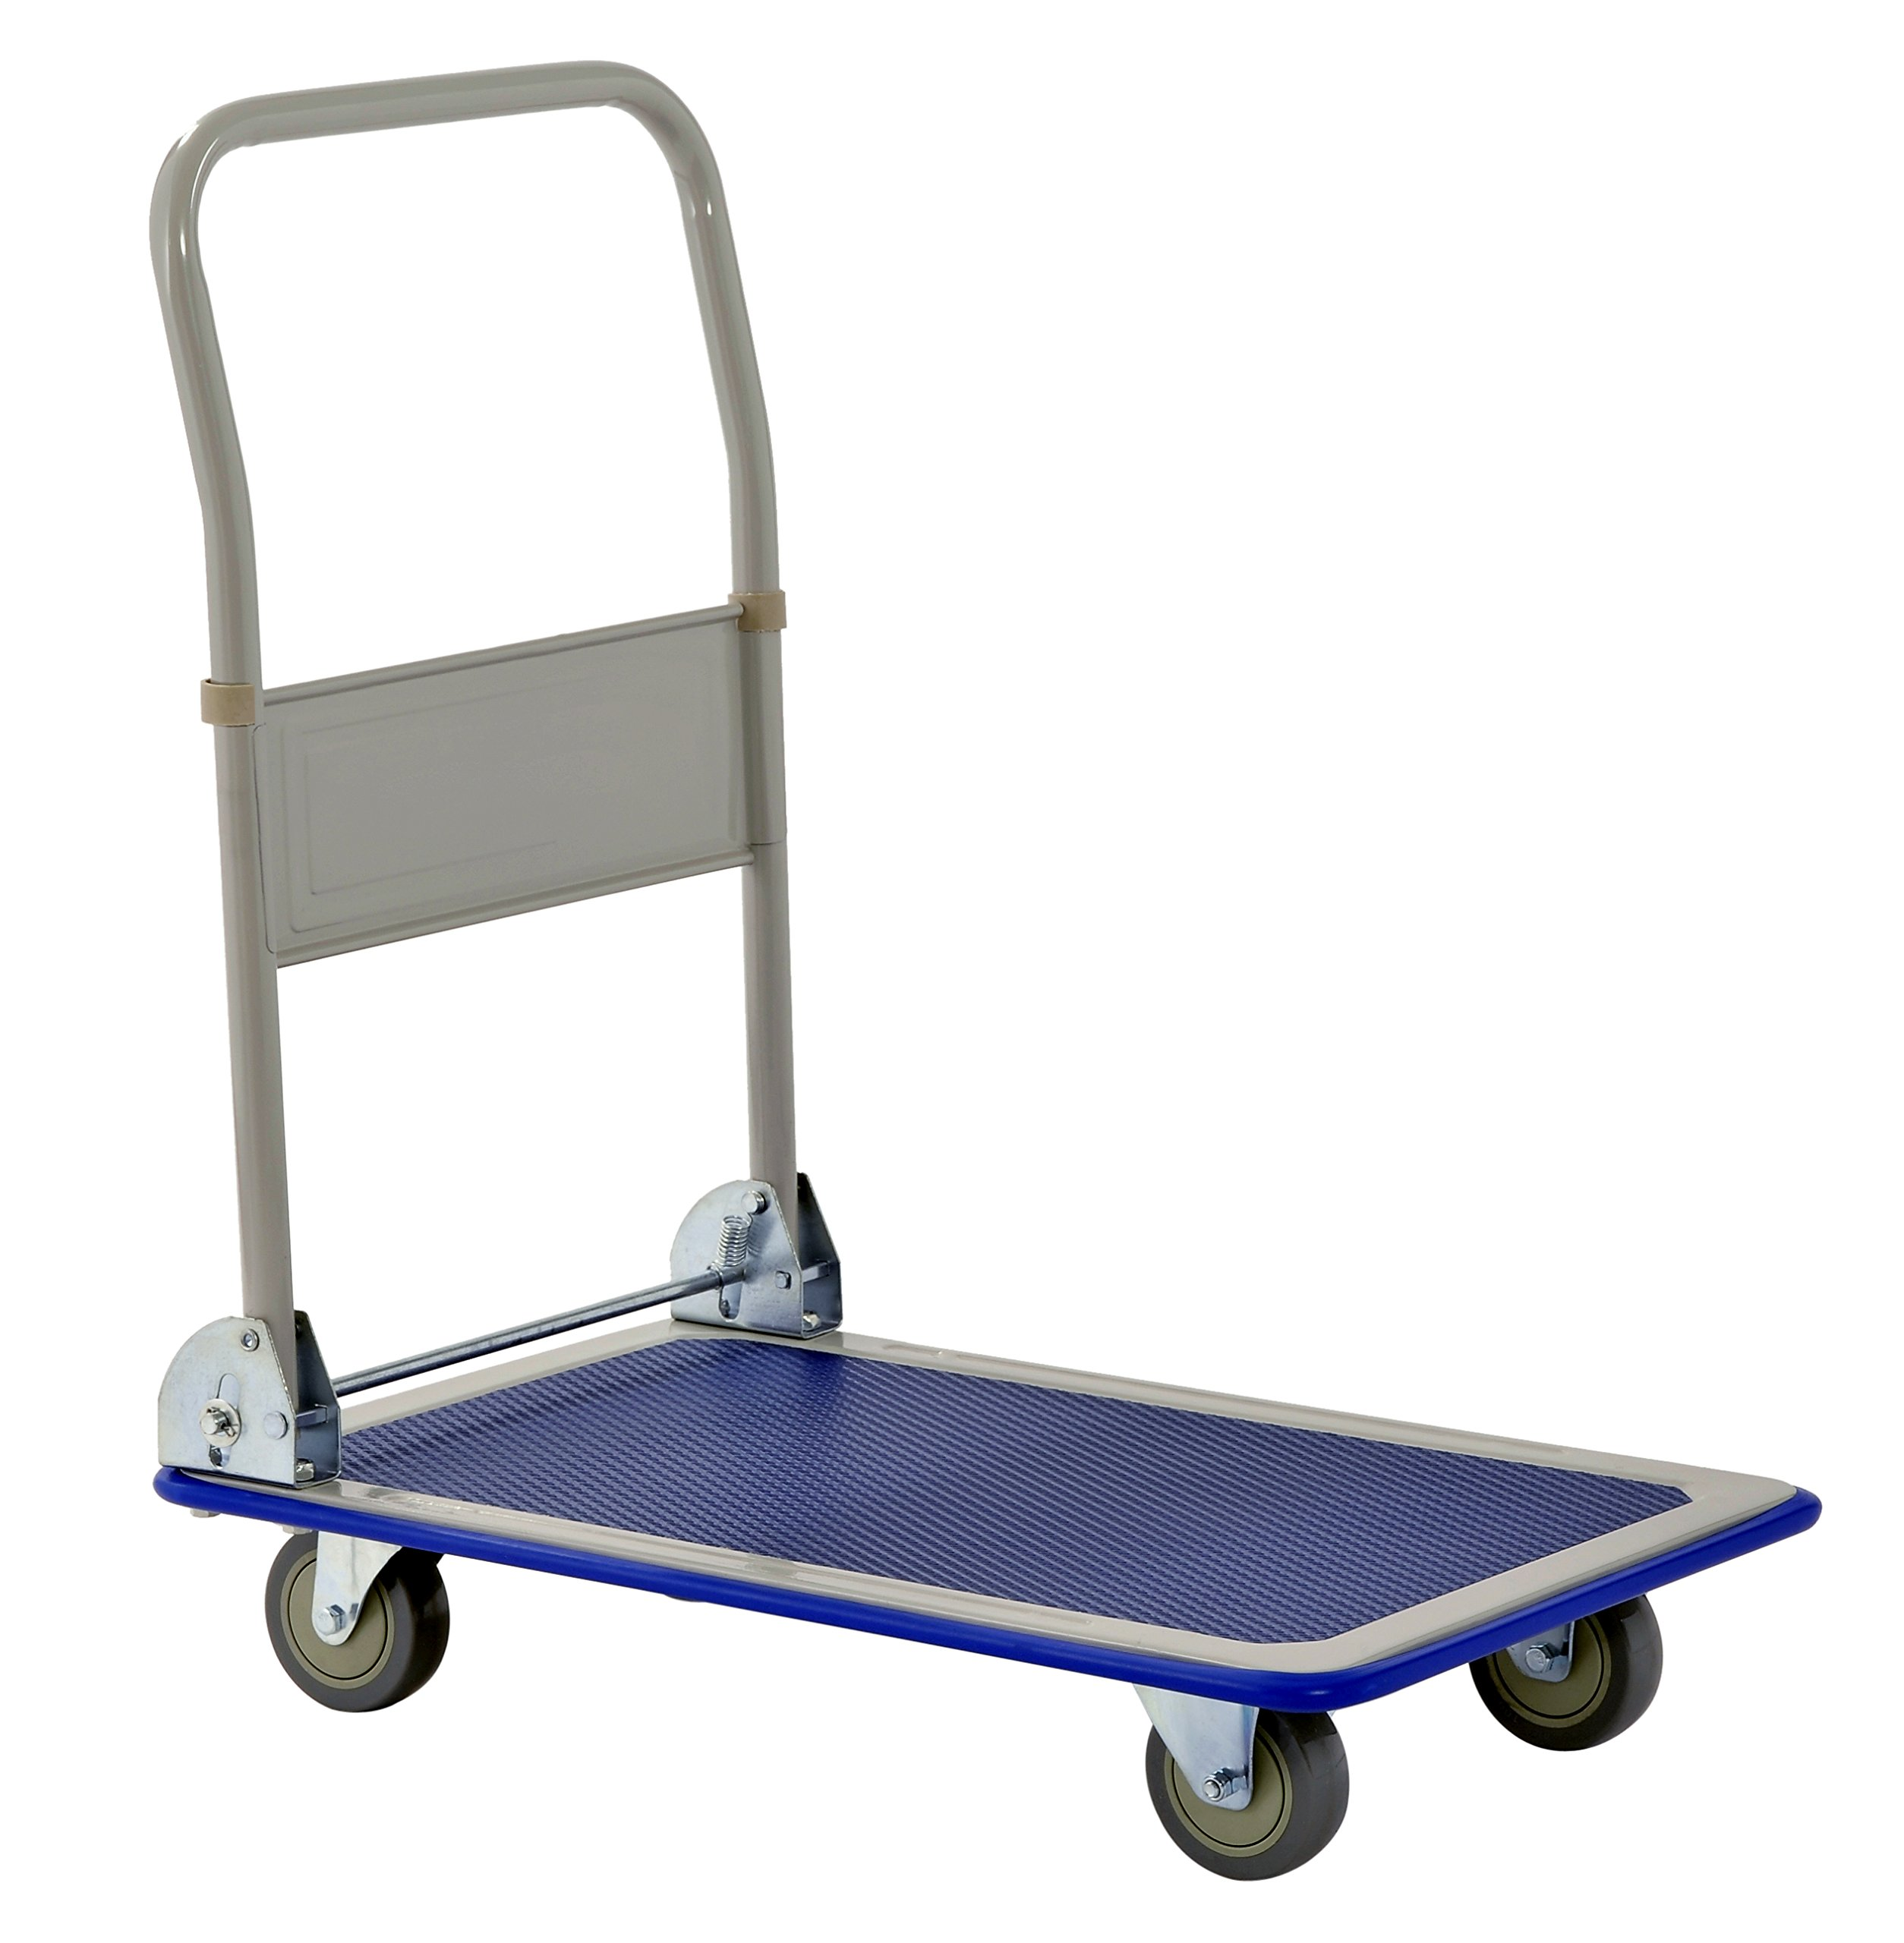 Muscle Rack FPC2918 Heavy Duty 330 lb. Capacity Folding Platform Cart, 11'' Height, 18'' Width, 29'' Length, 330 Pounds Load Capacity